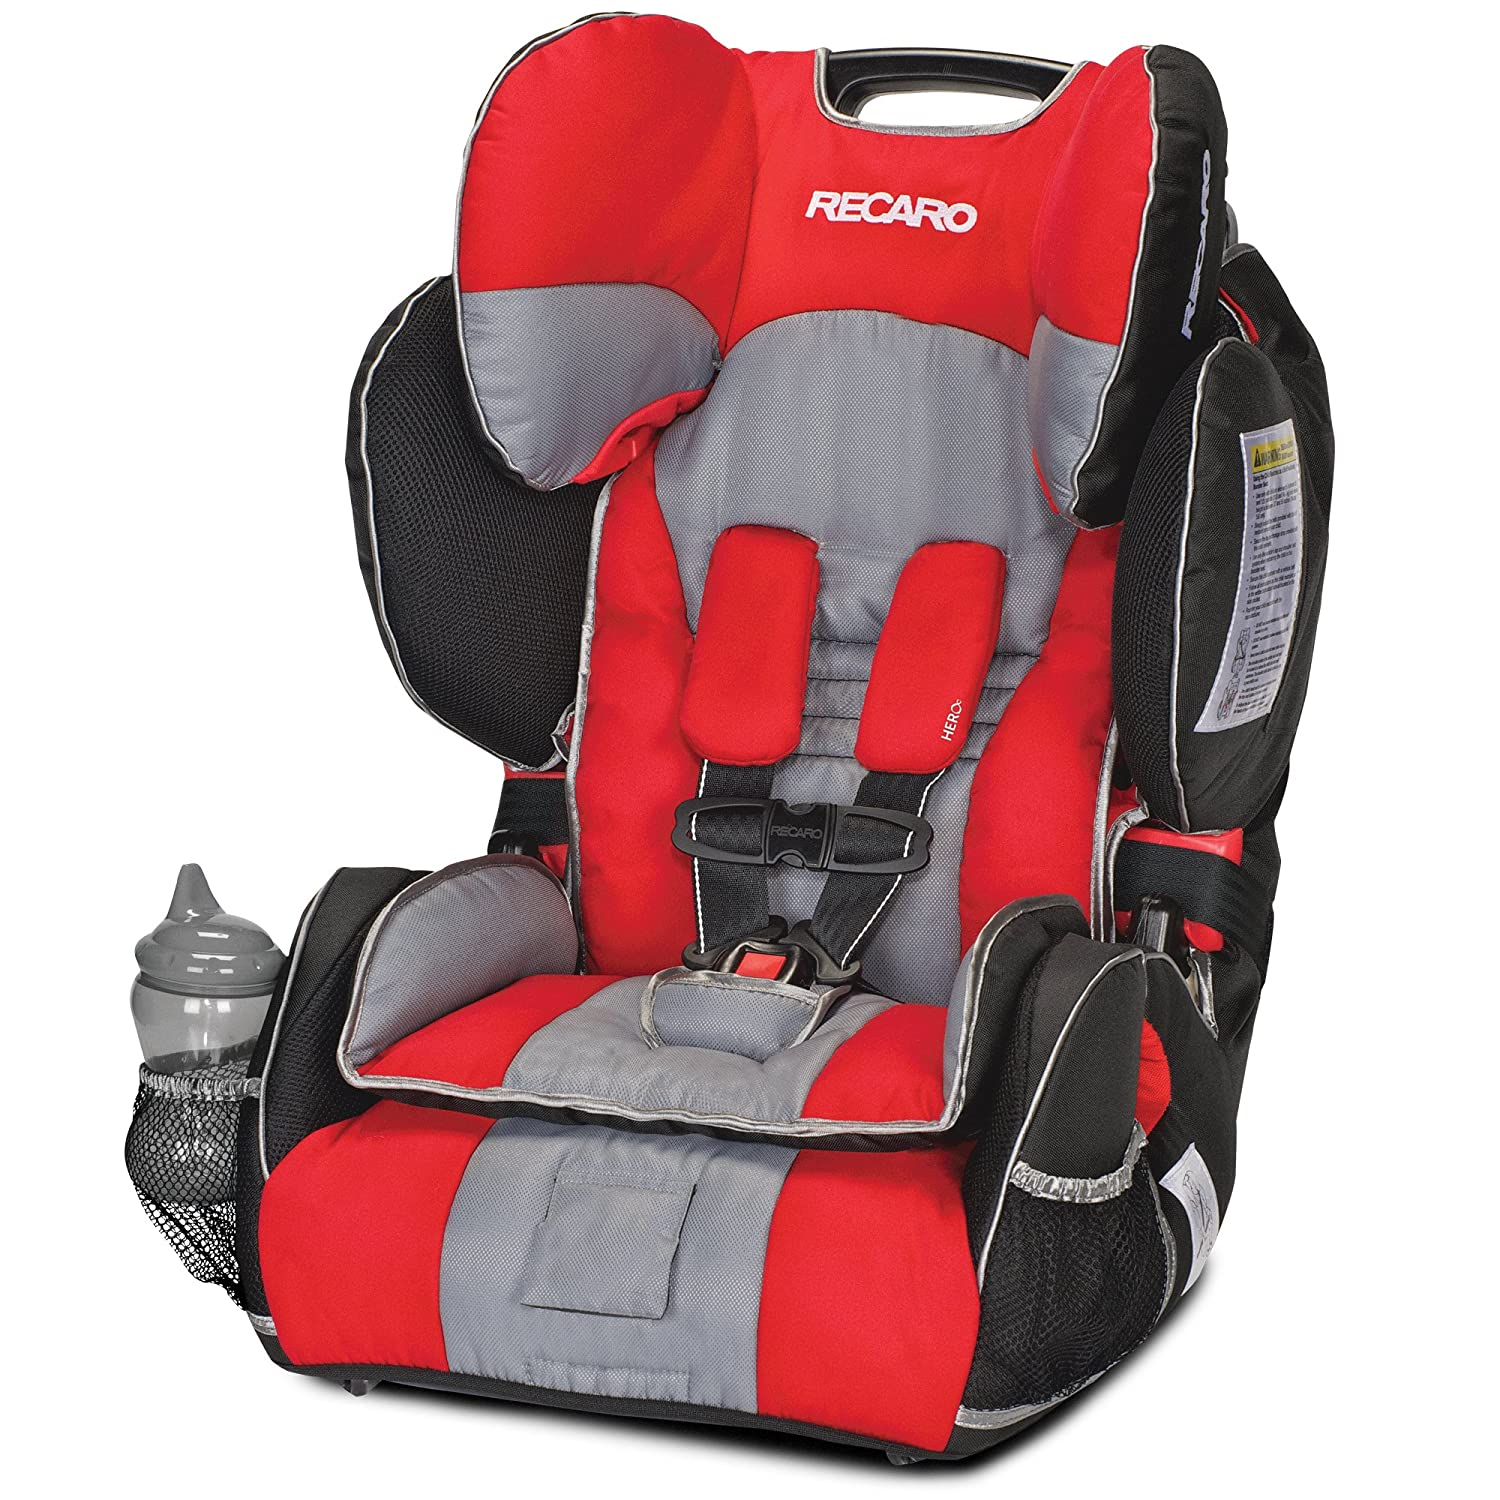 Amazon.com  RECARO Performance SPORT Combination Harness to Booster Redd  Child Safety Booster Car Seats  Baby  sc 1 st  Amazon.com & Amazon.com : RECARO Performance SPORT Combination Harness to ... islam-shia.org